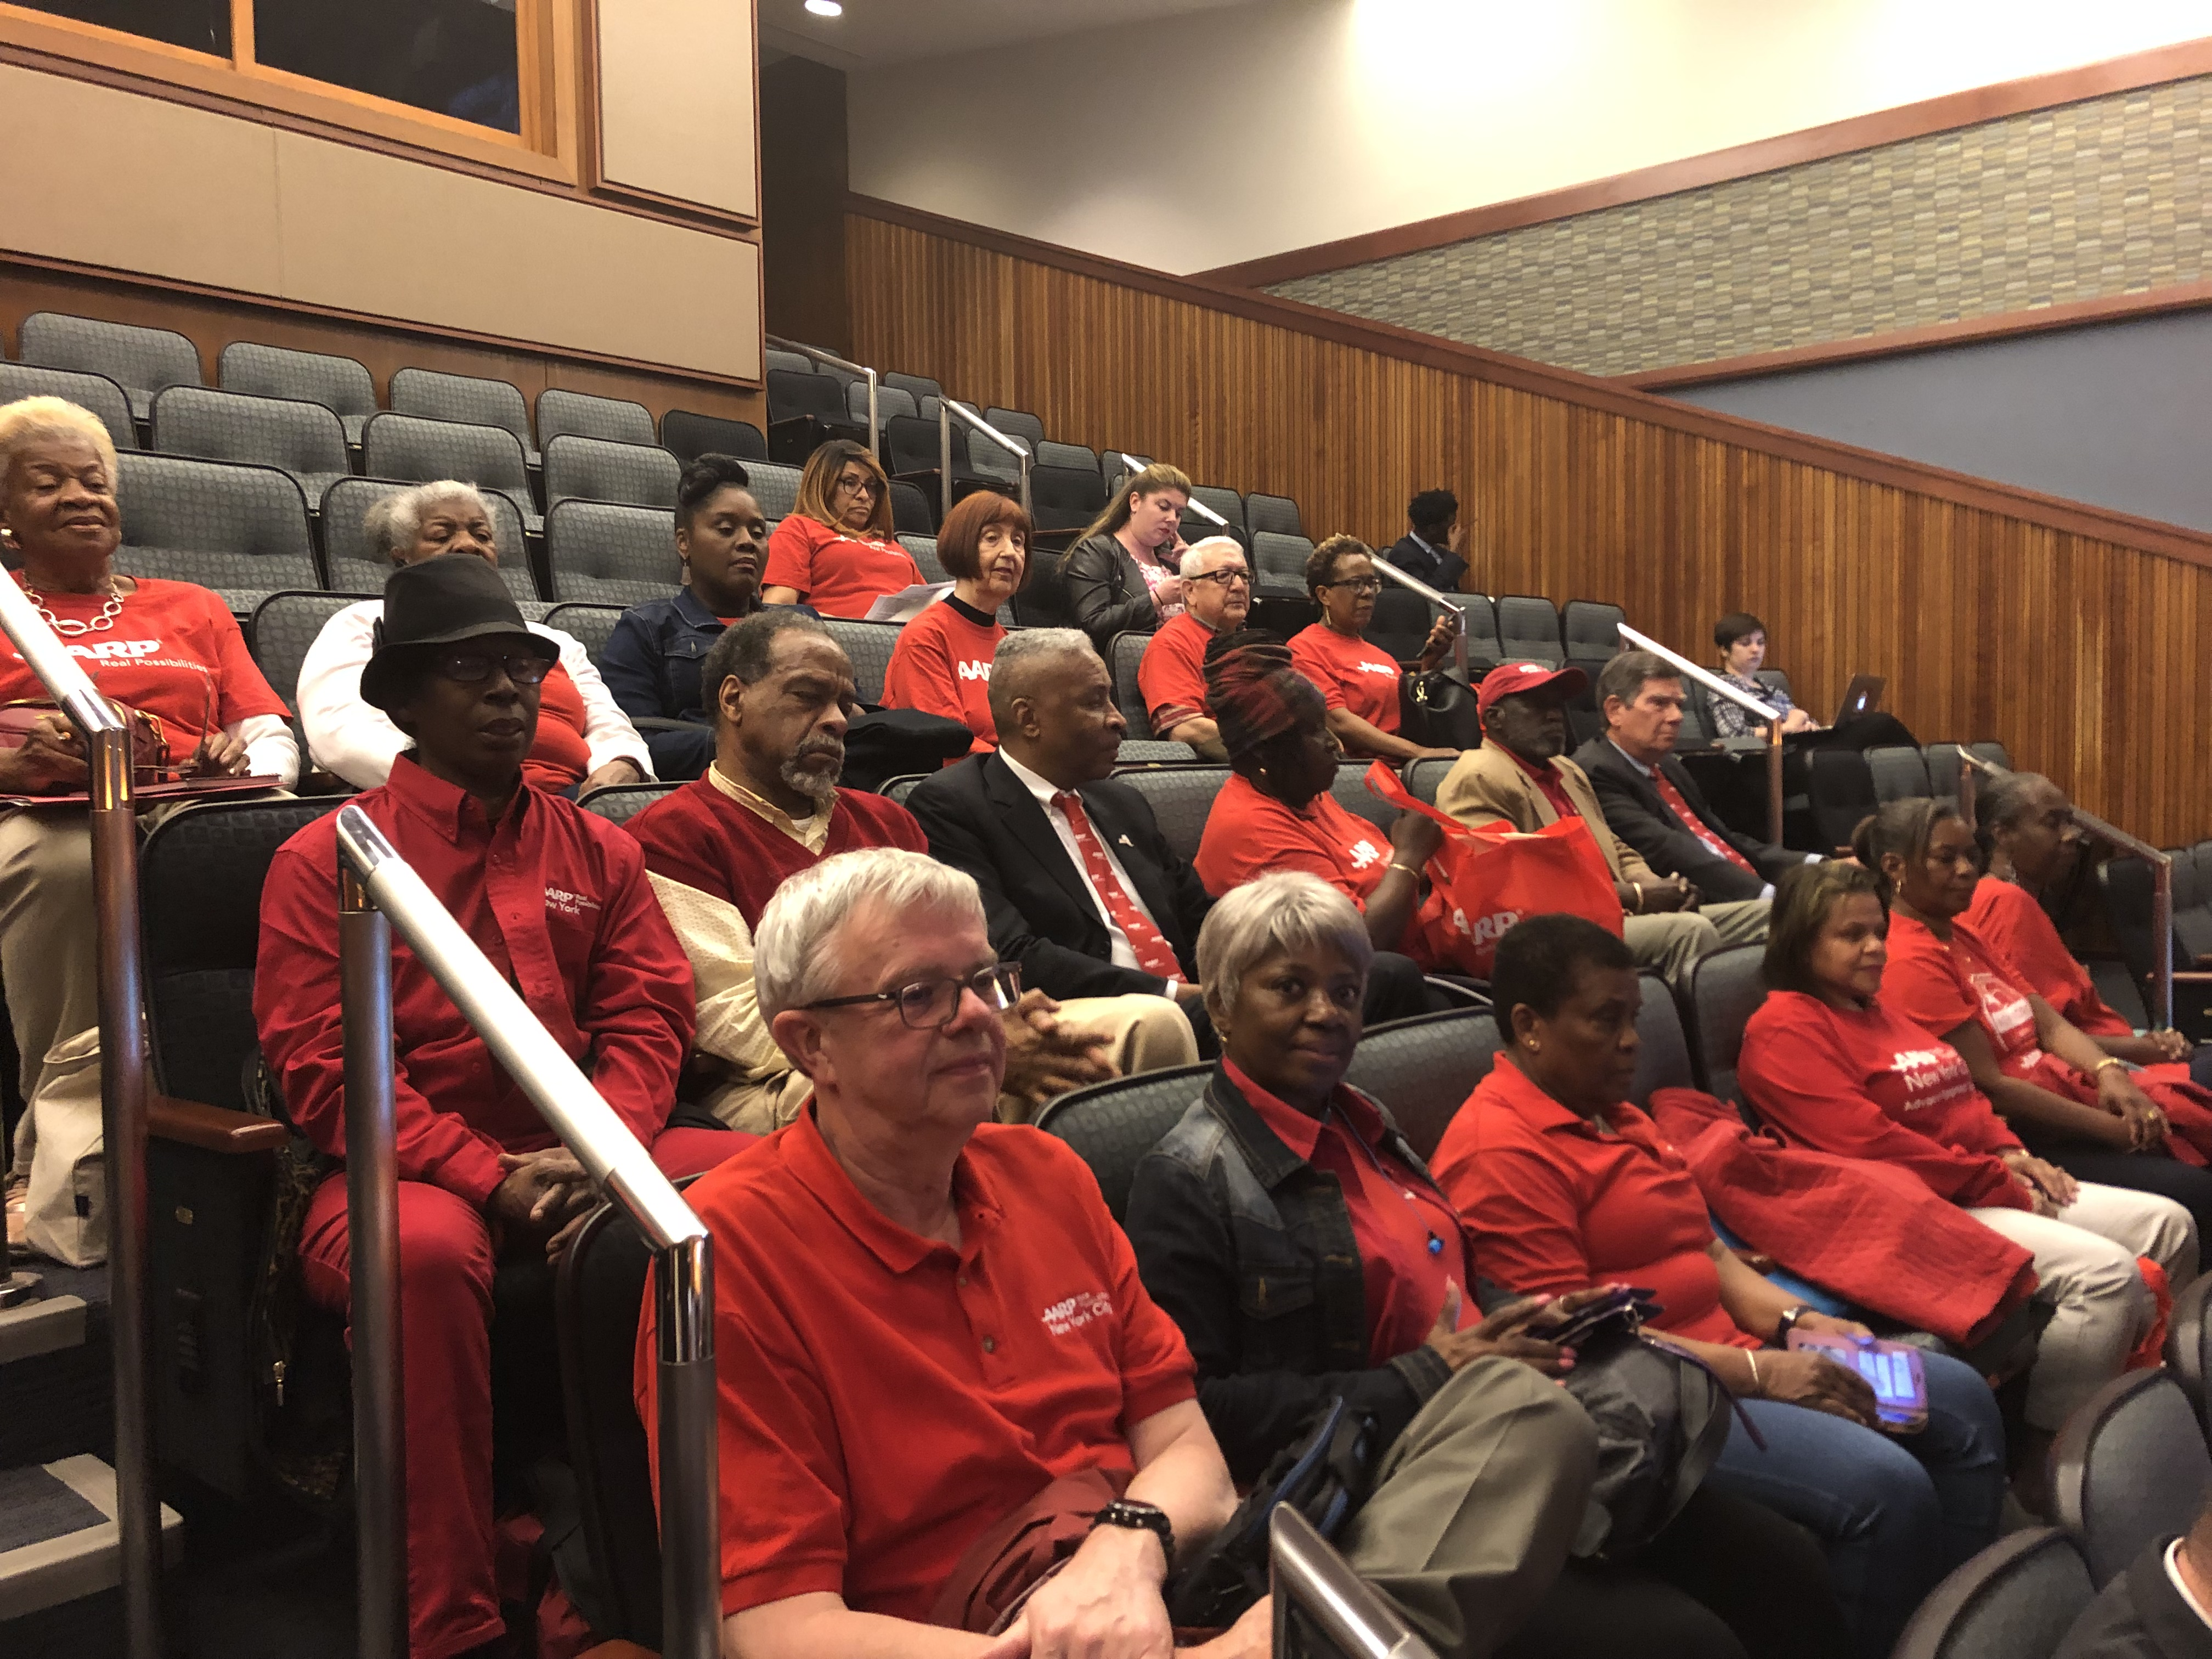 Volunteers at a public hearing